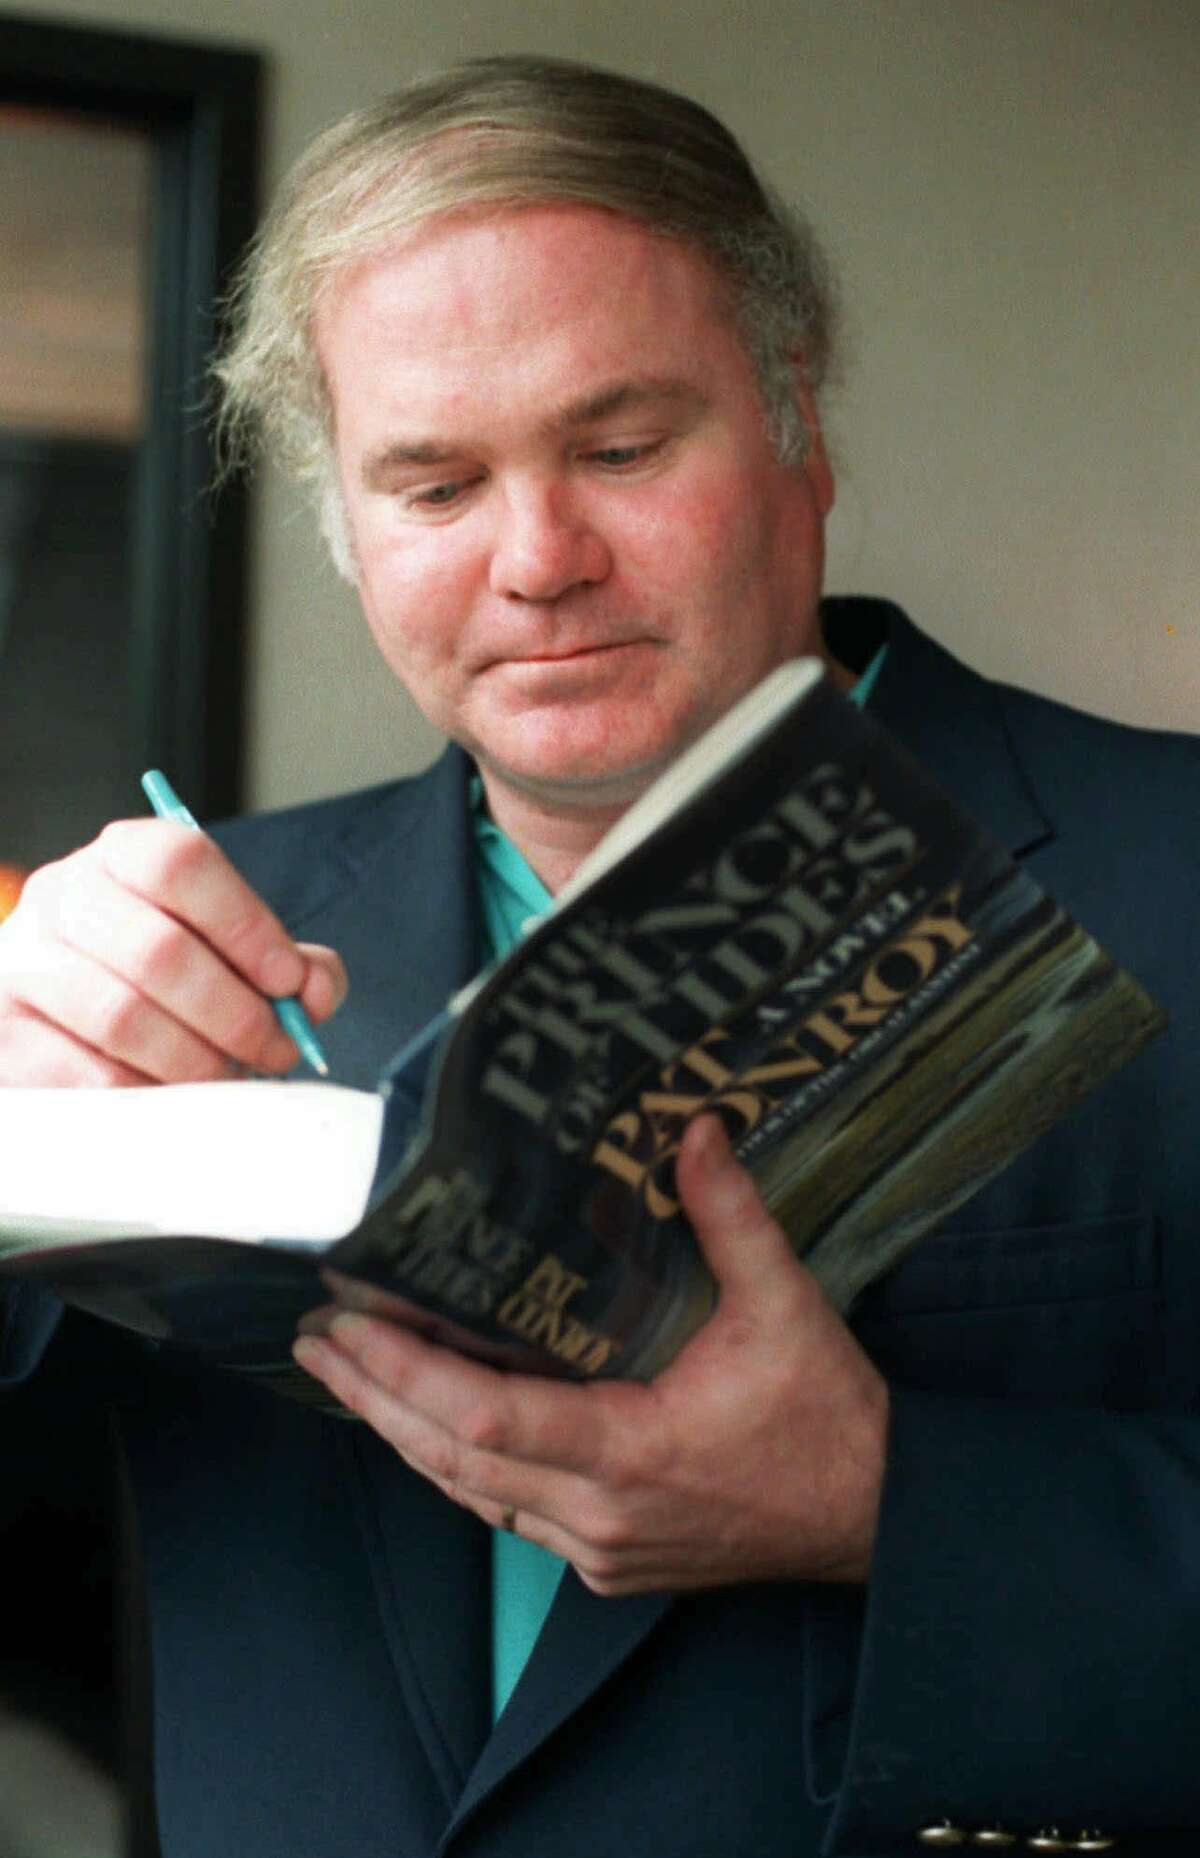 FILE--Pat Conroy is shown autographing a copy of his book, 'The Prince of Tides,' in this Oct. 20, 1986, file photo. Conroy is in negotiations with the Margaret Mitchell estate to write another sequel to the Civil War saga 'Gone With the Wind,' according to published reports saying the deal might be worth $10 million. (AP Photo/H. Joe Holloway Jr., File)